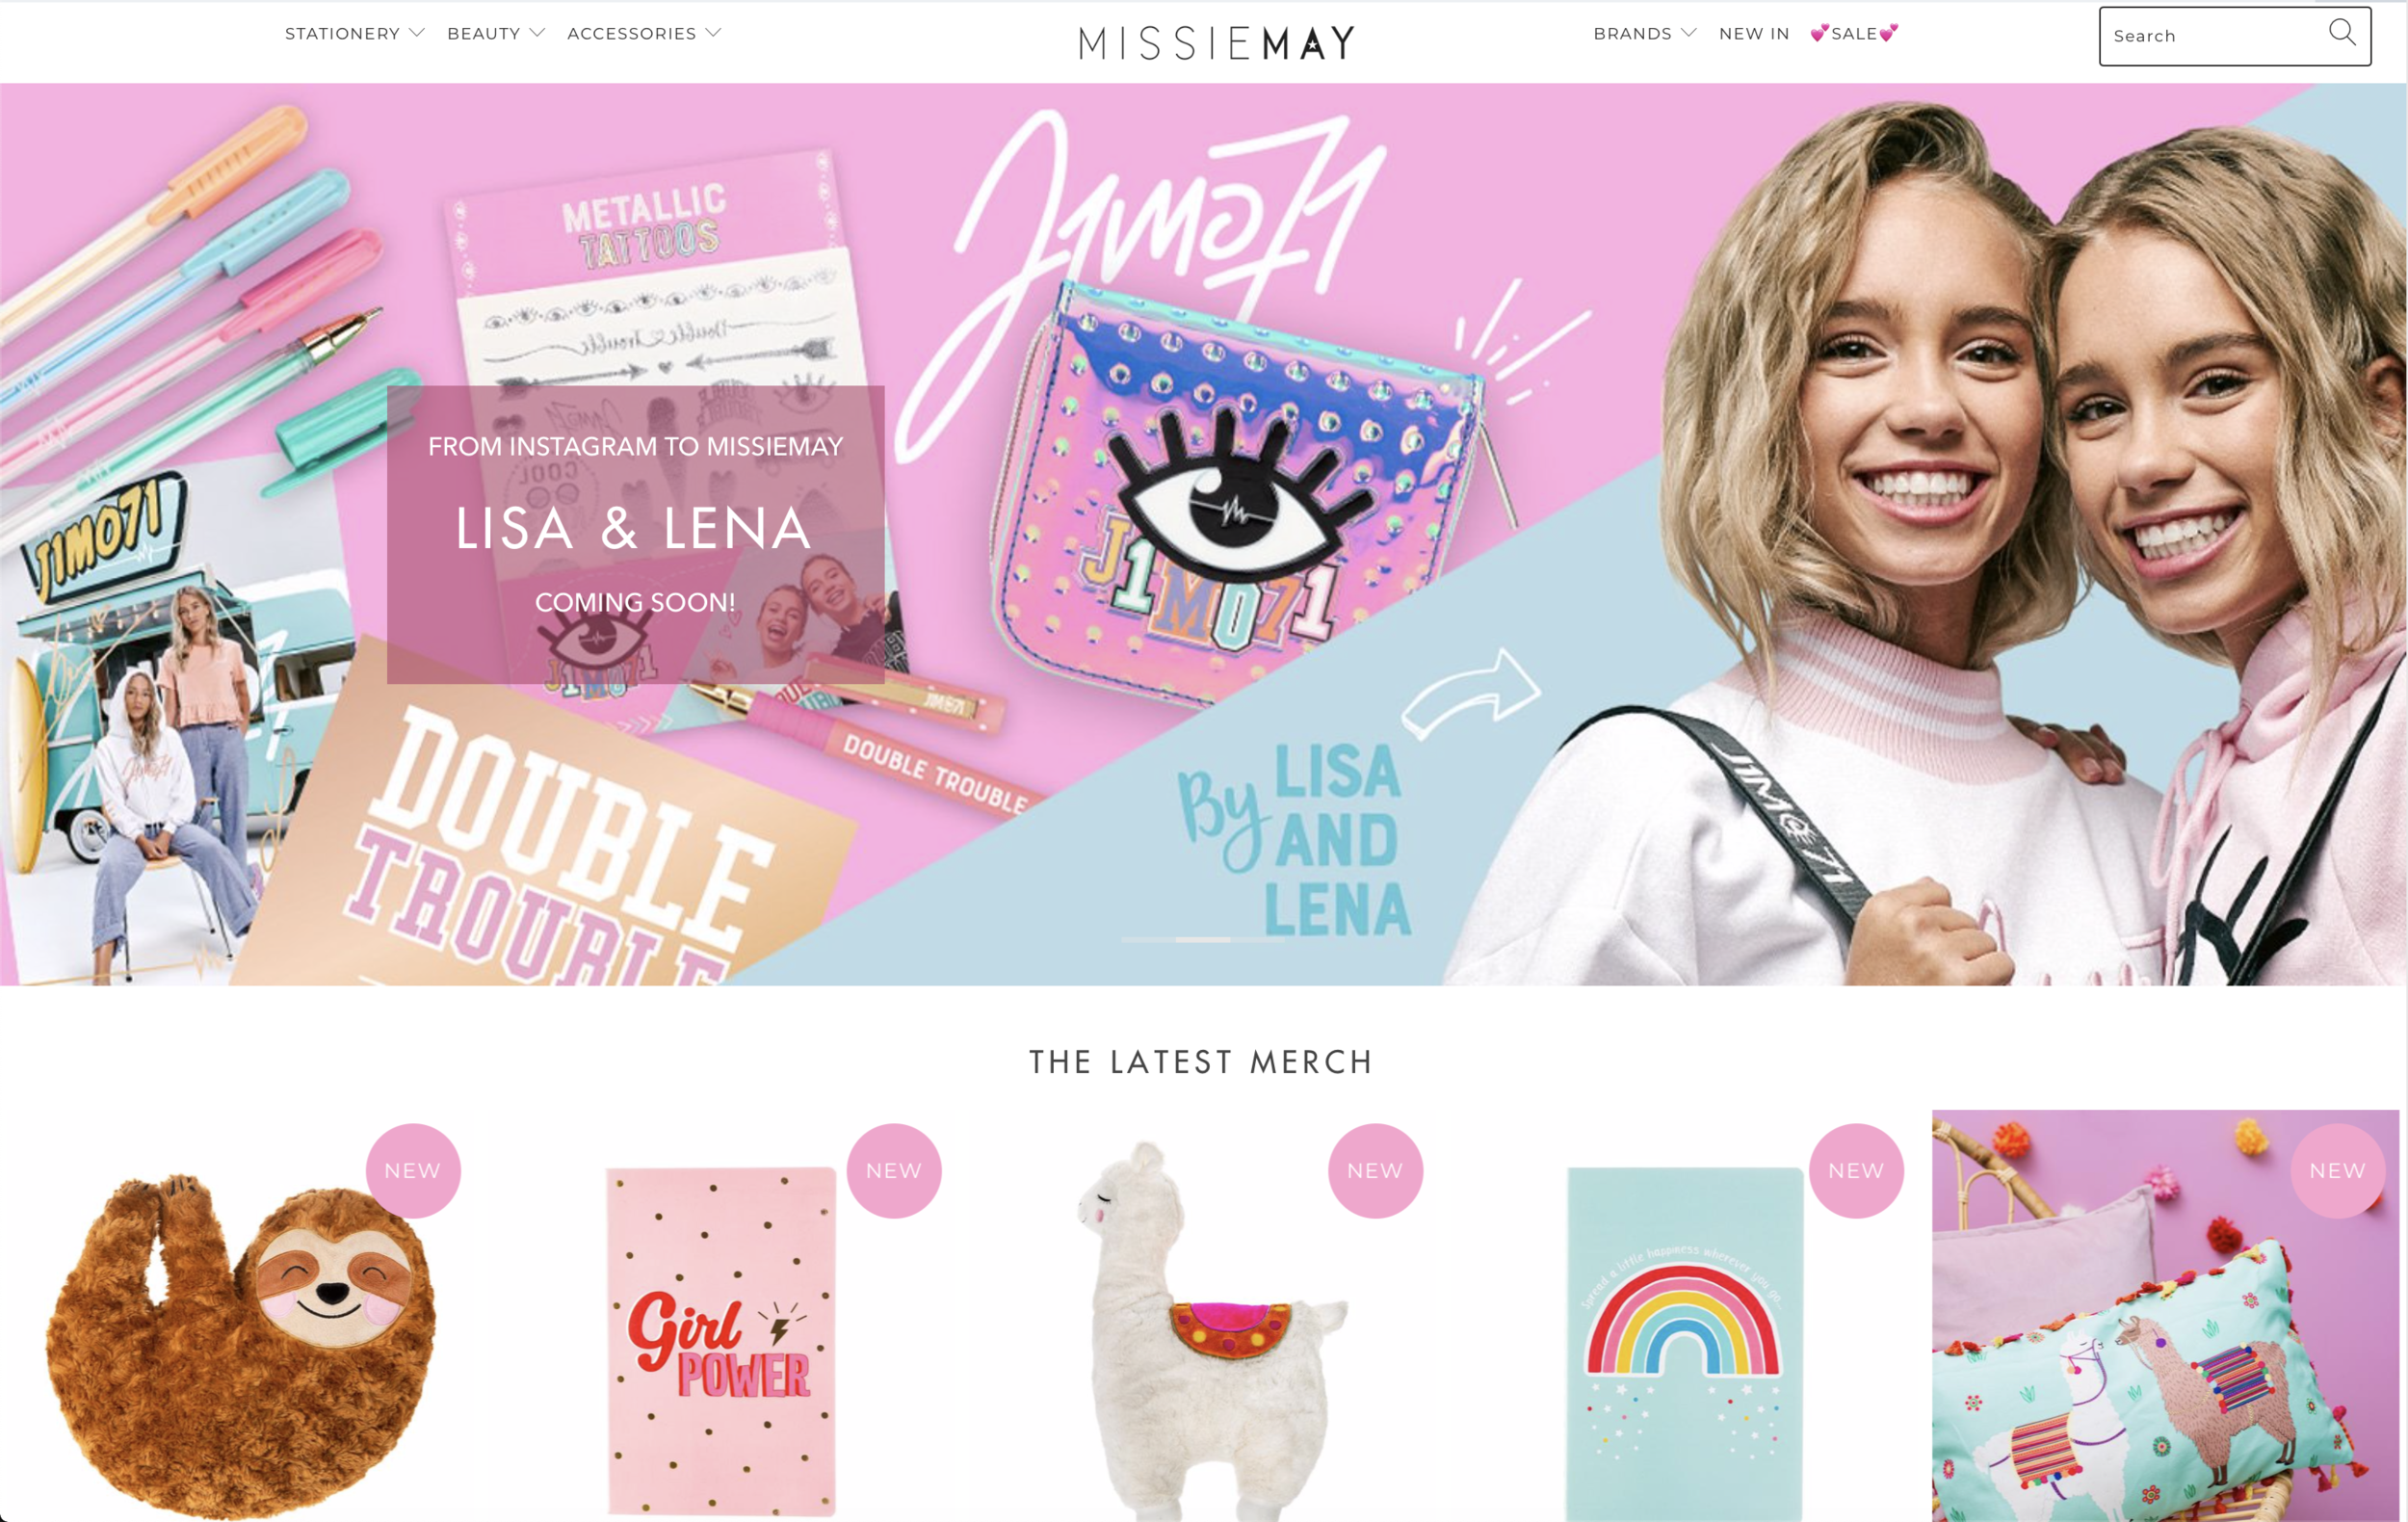 MissieMay - The one stop girls gift shopwww.missiemay.com